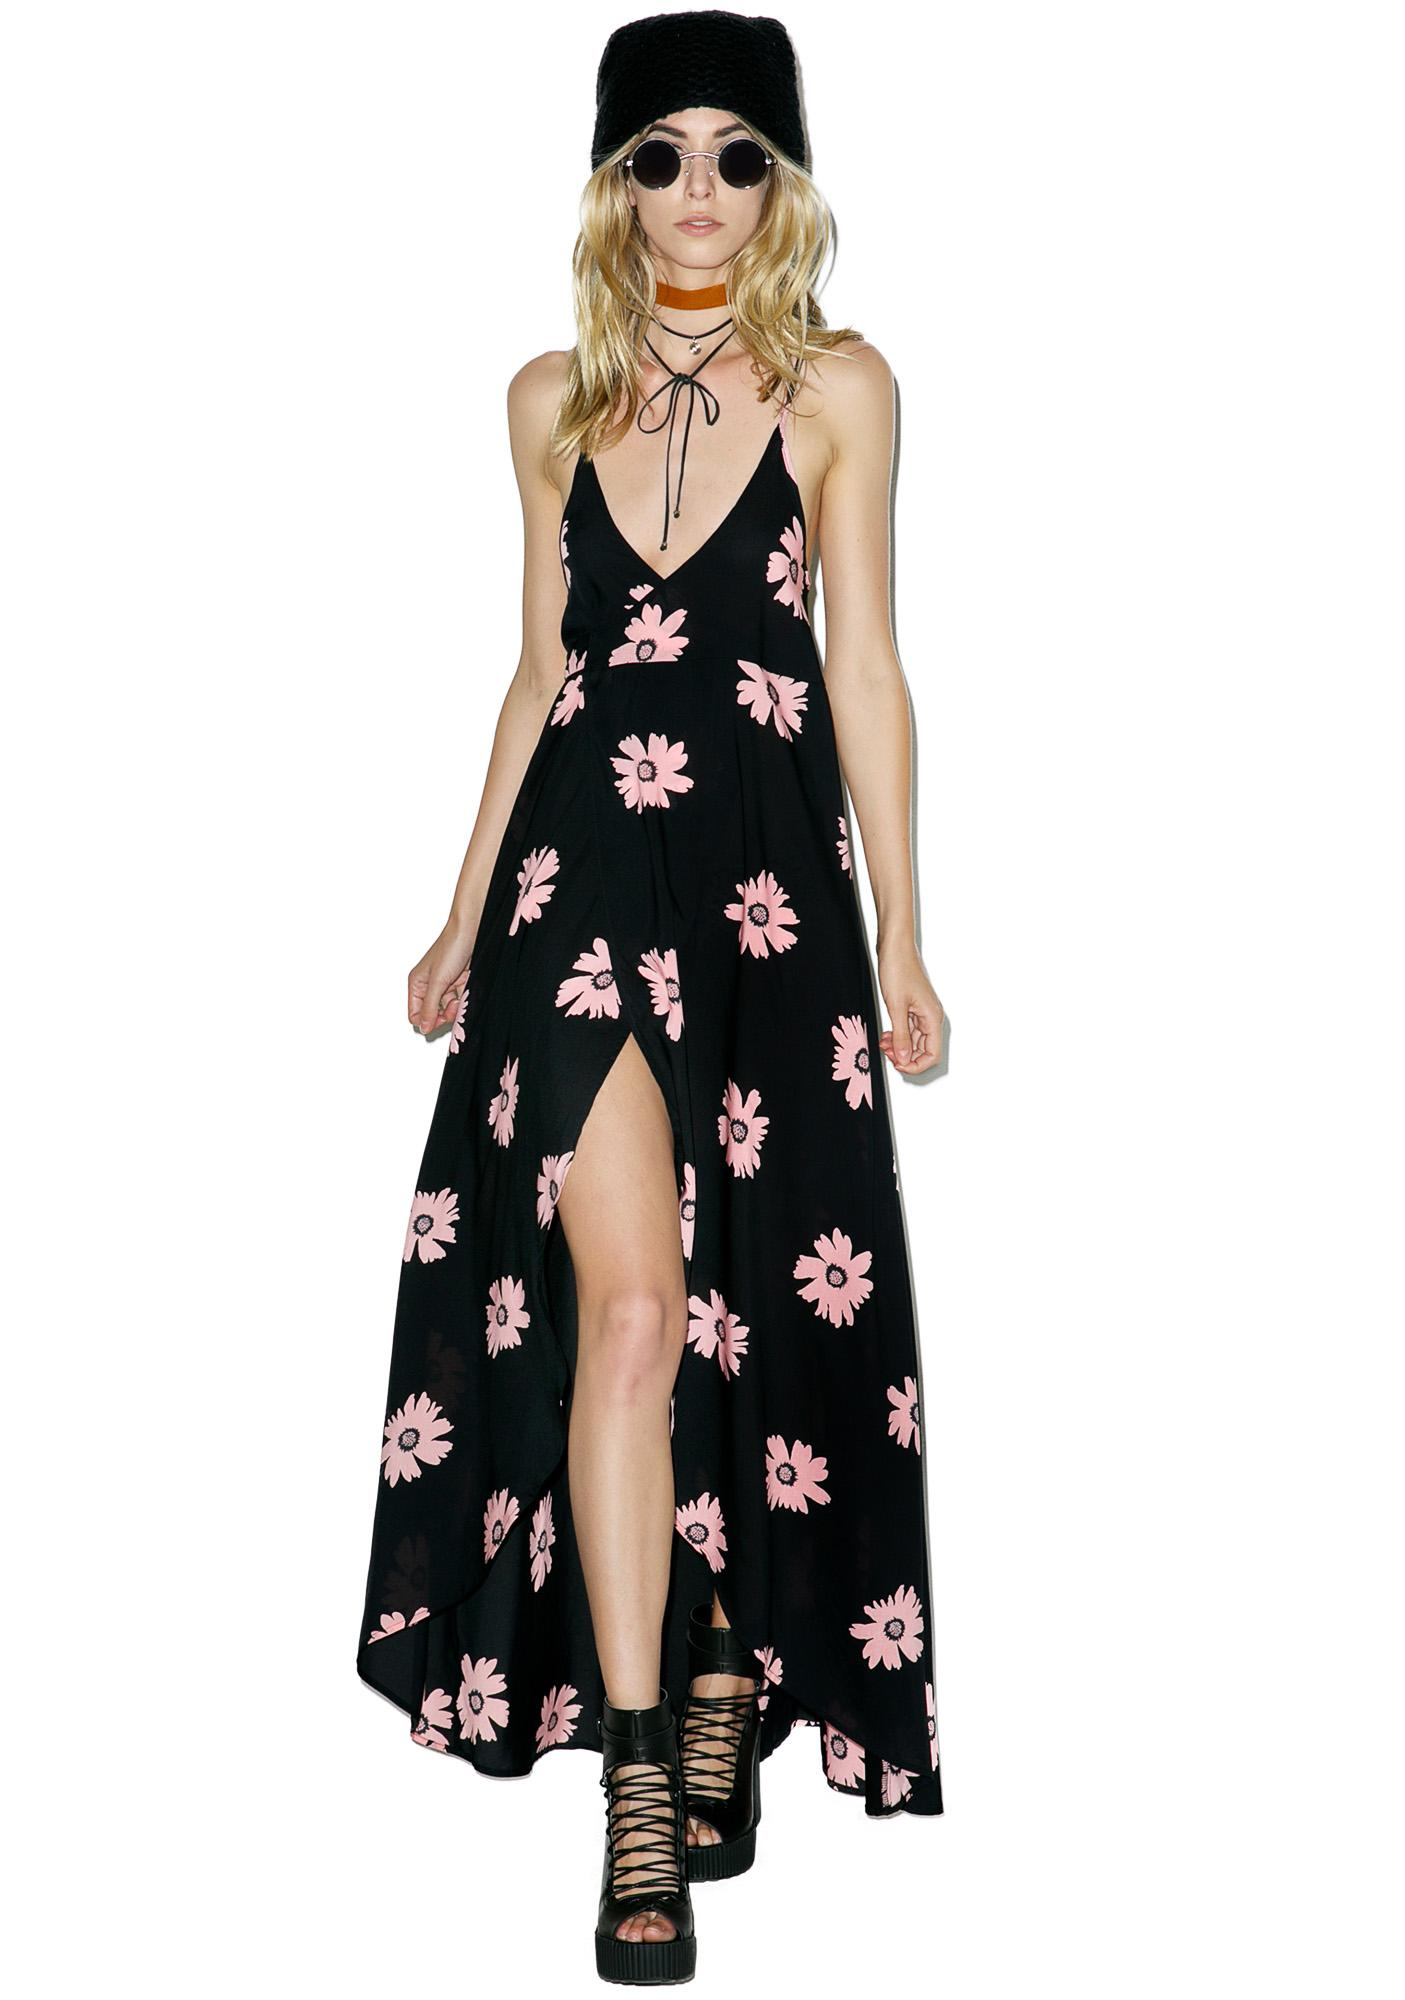 Wildfox Couture Pink Daisy Atlantis Wrap Dress